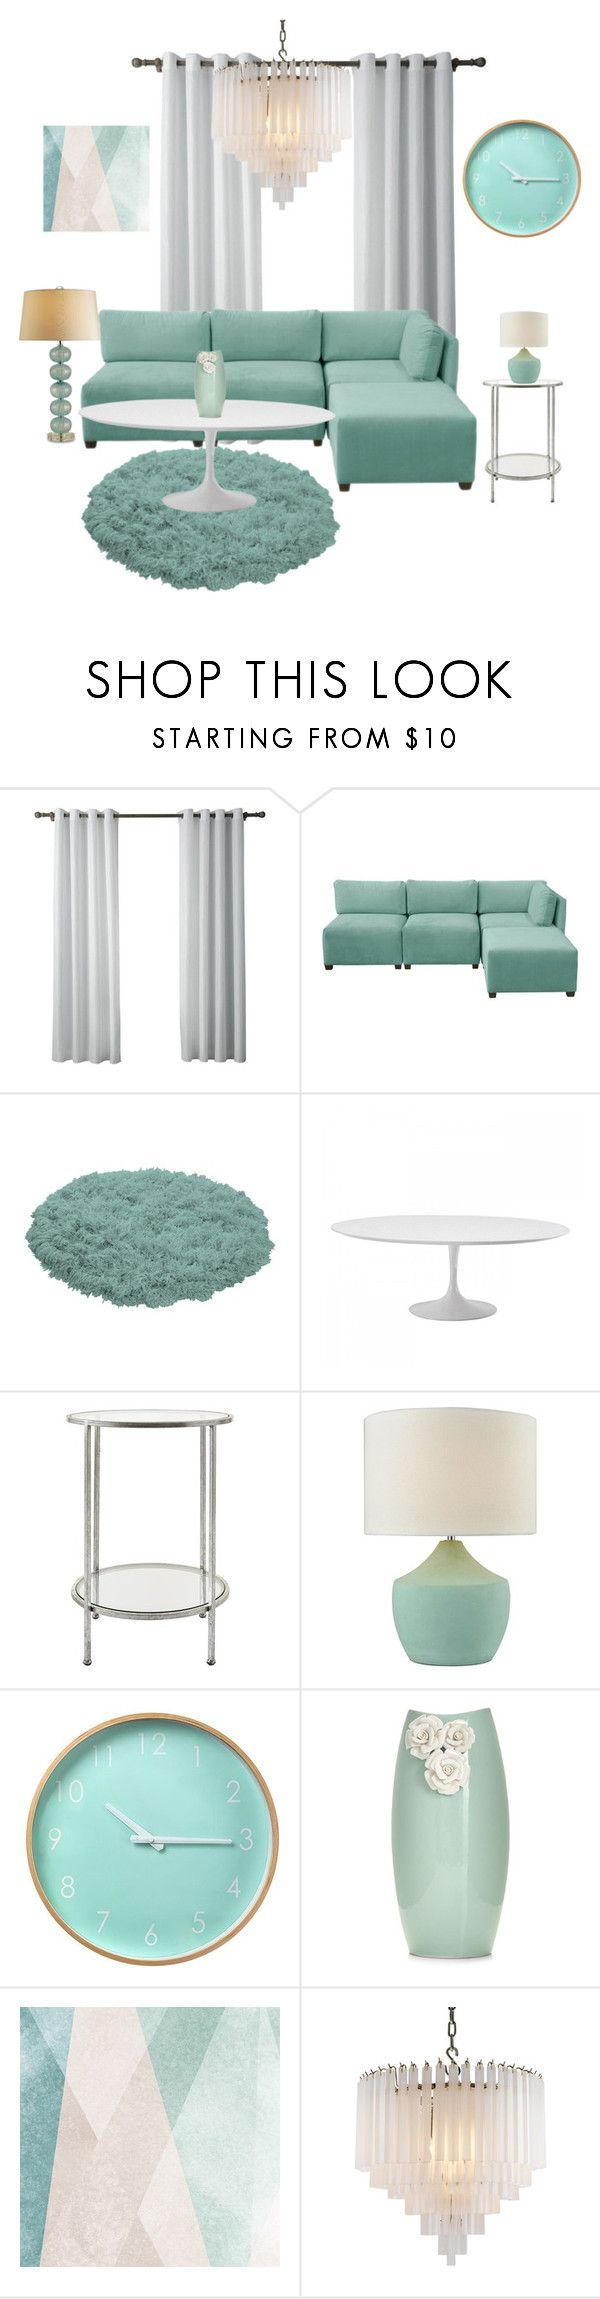 """Untitled #29"" by qwer173935 ❤ liked on Polyvore featuring Skyline, Home Decorators Collection, Sandberg Furniture and Eichholtz"